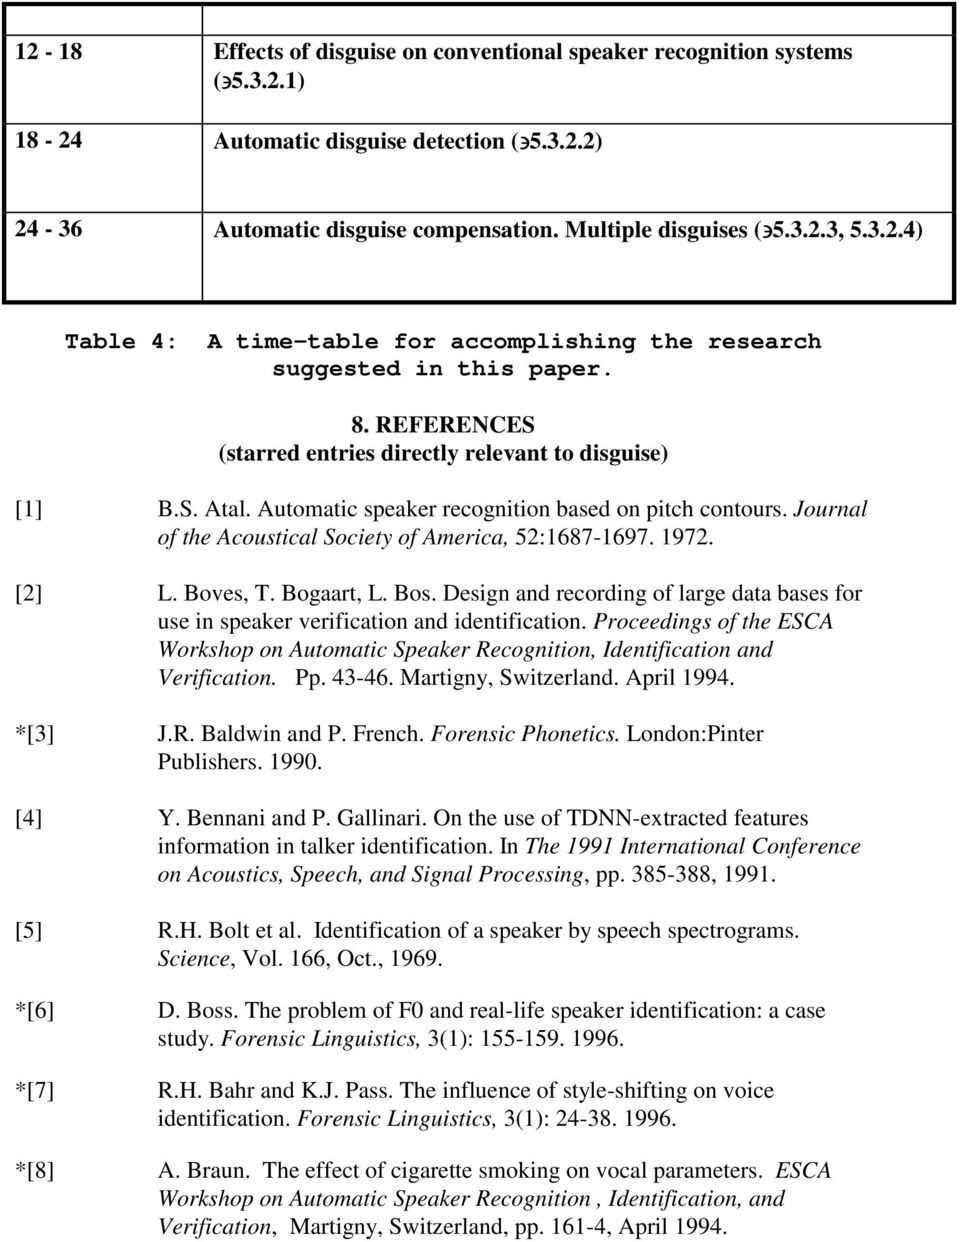 [2] L. Boves, T. Bogaart, L. Bos. Design and recording of large data bases for use in speaker verification and identification.